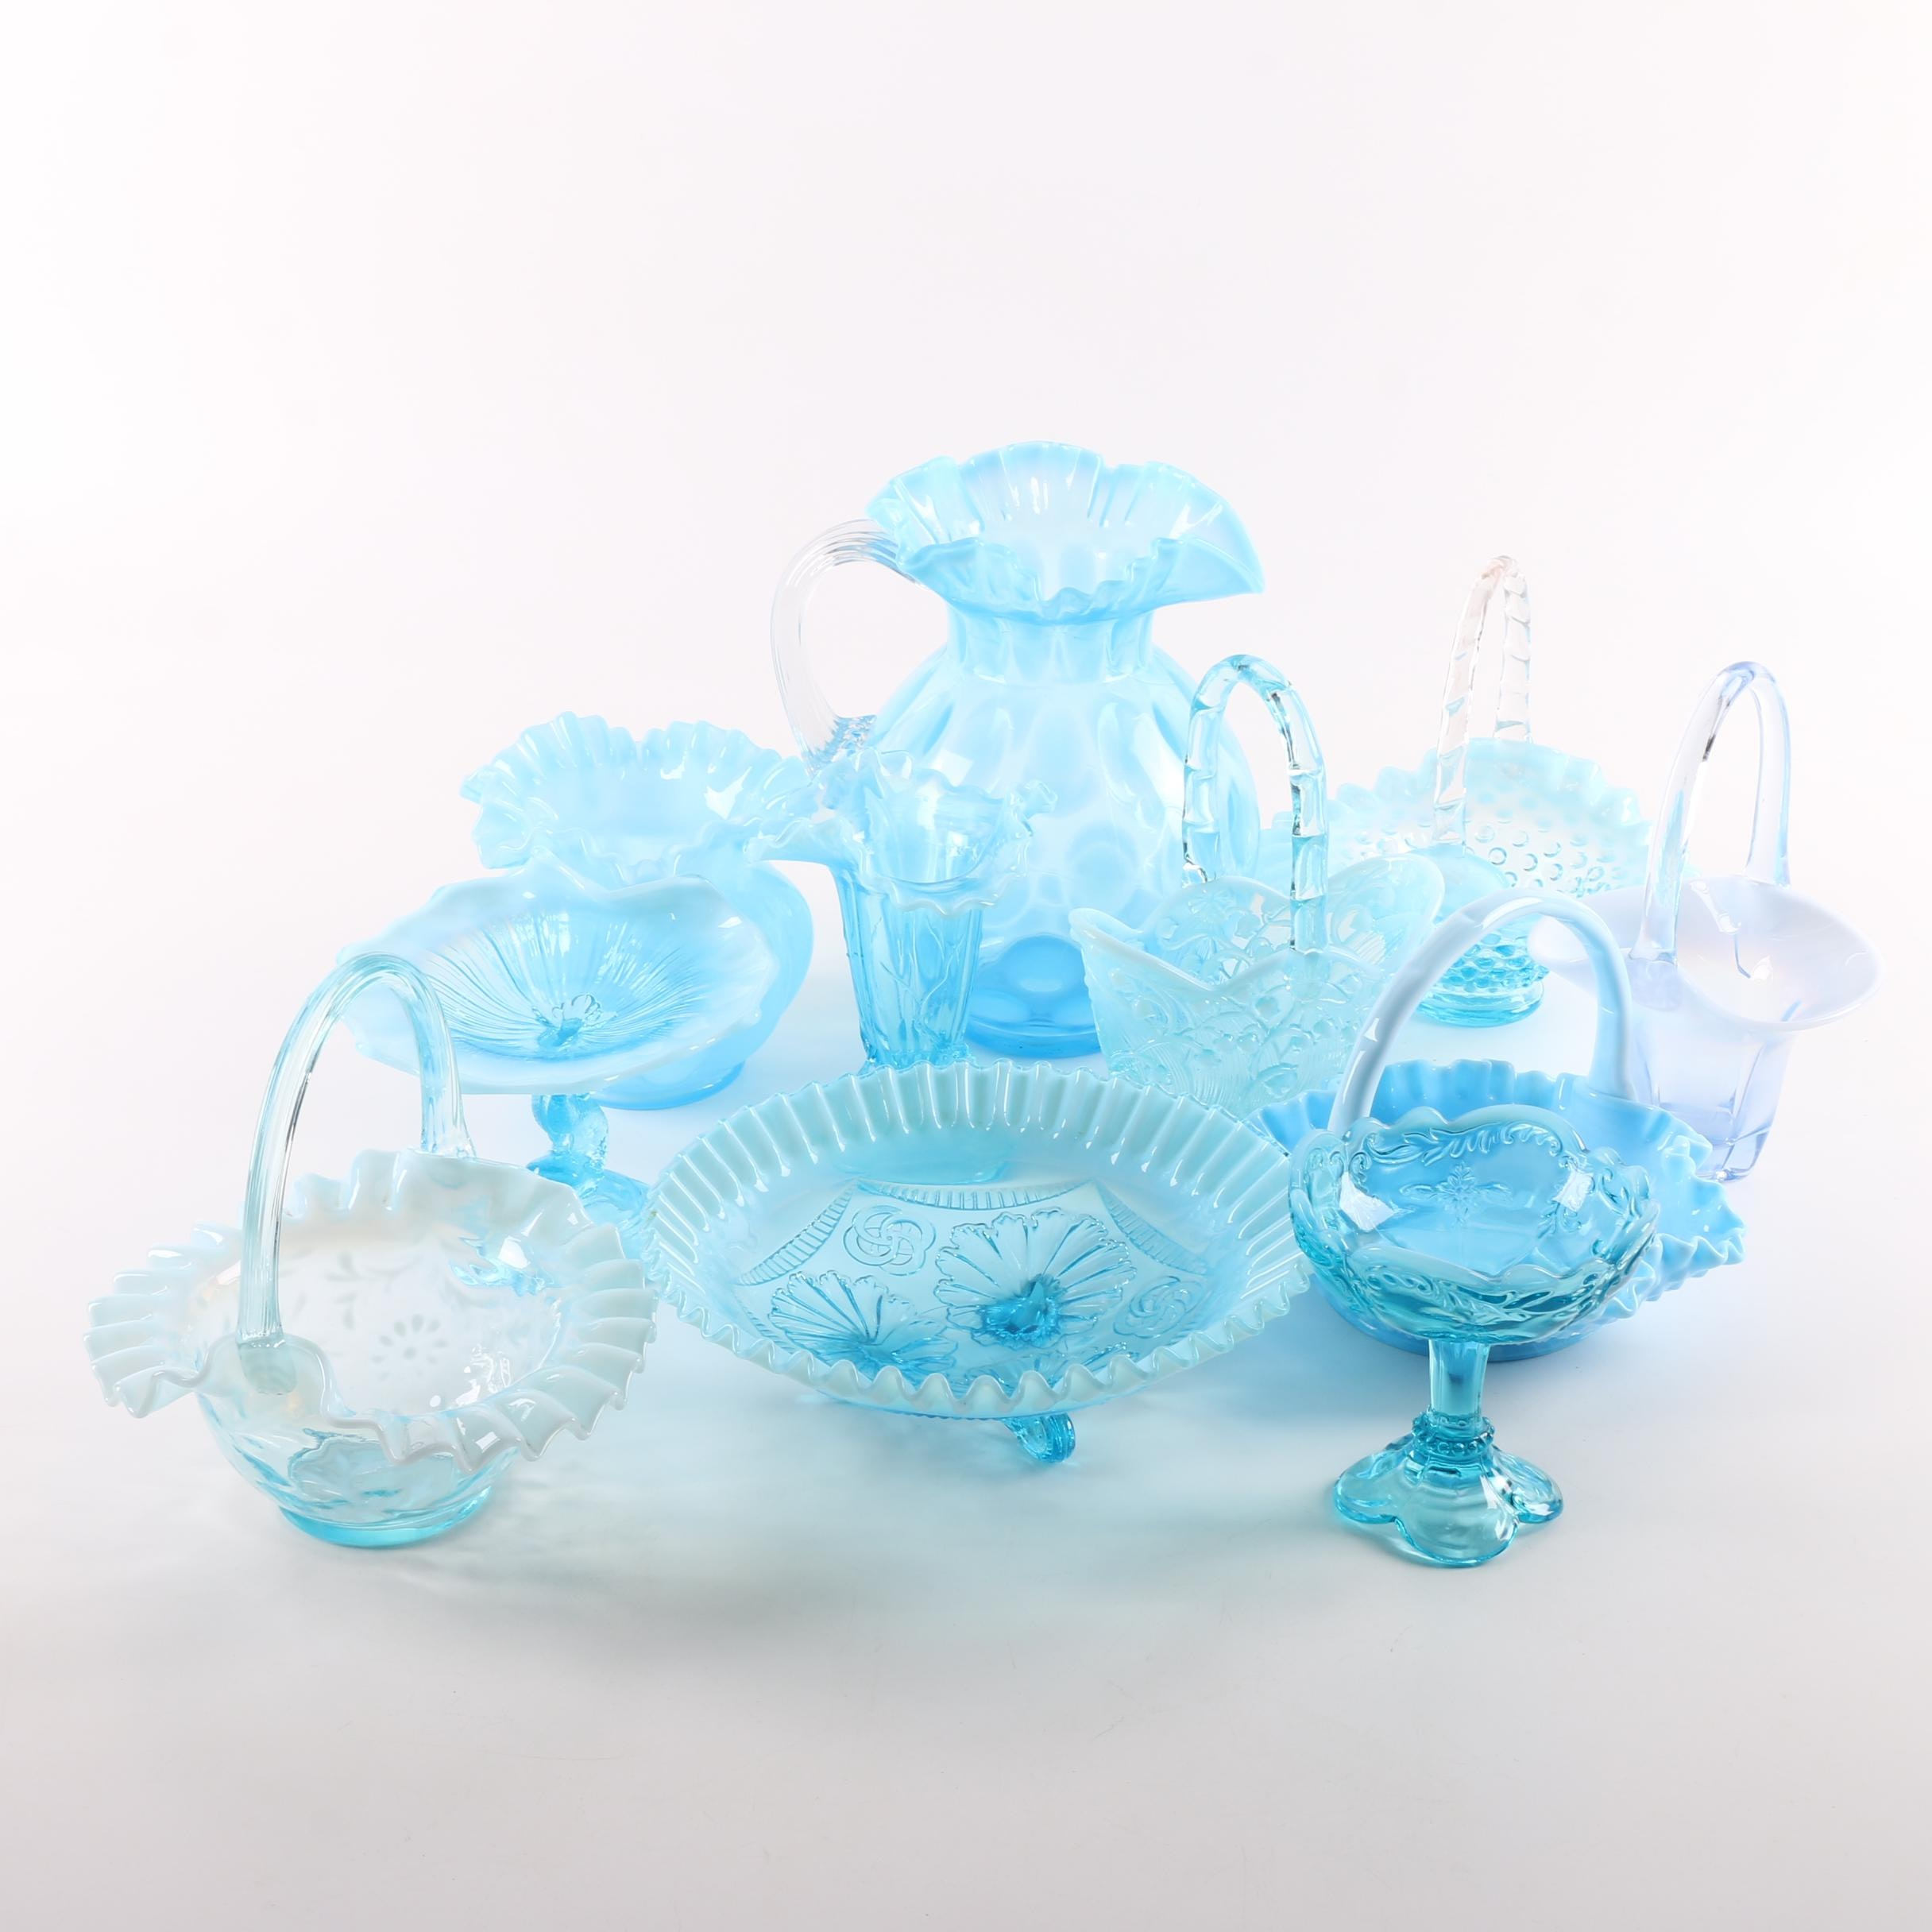 Collection of Victorian Style Glass Compotes and Baskets